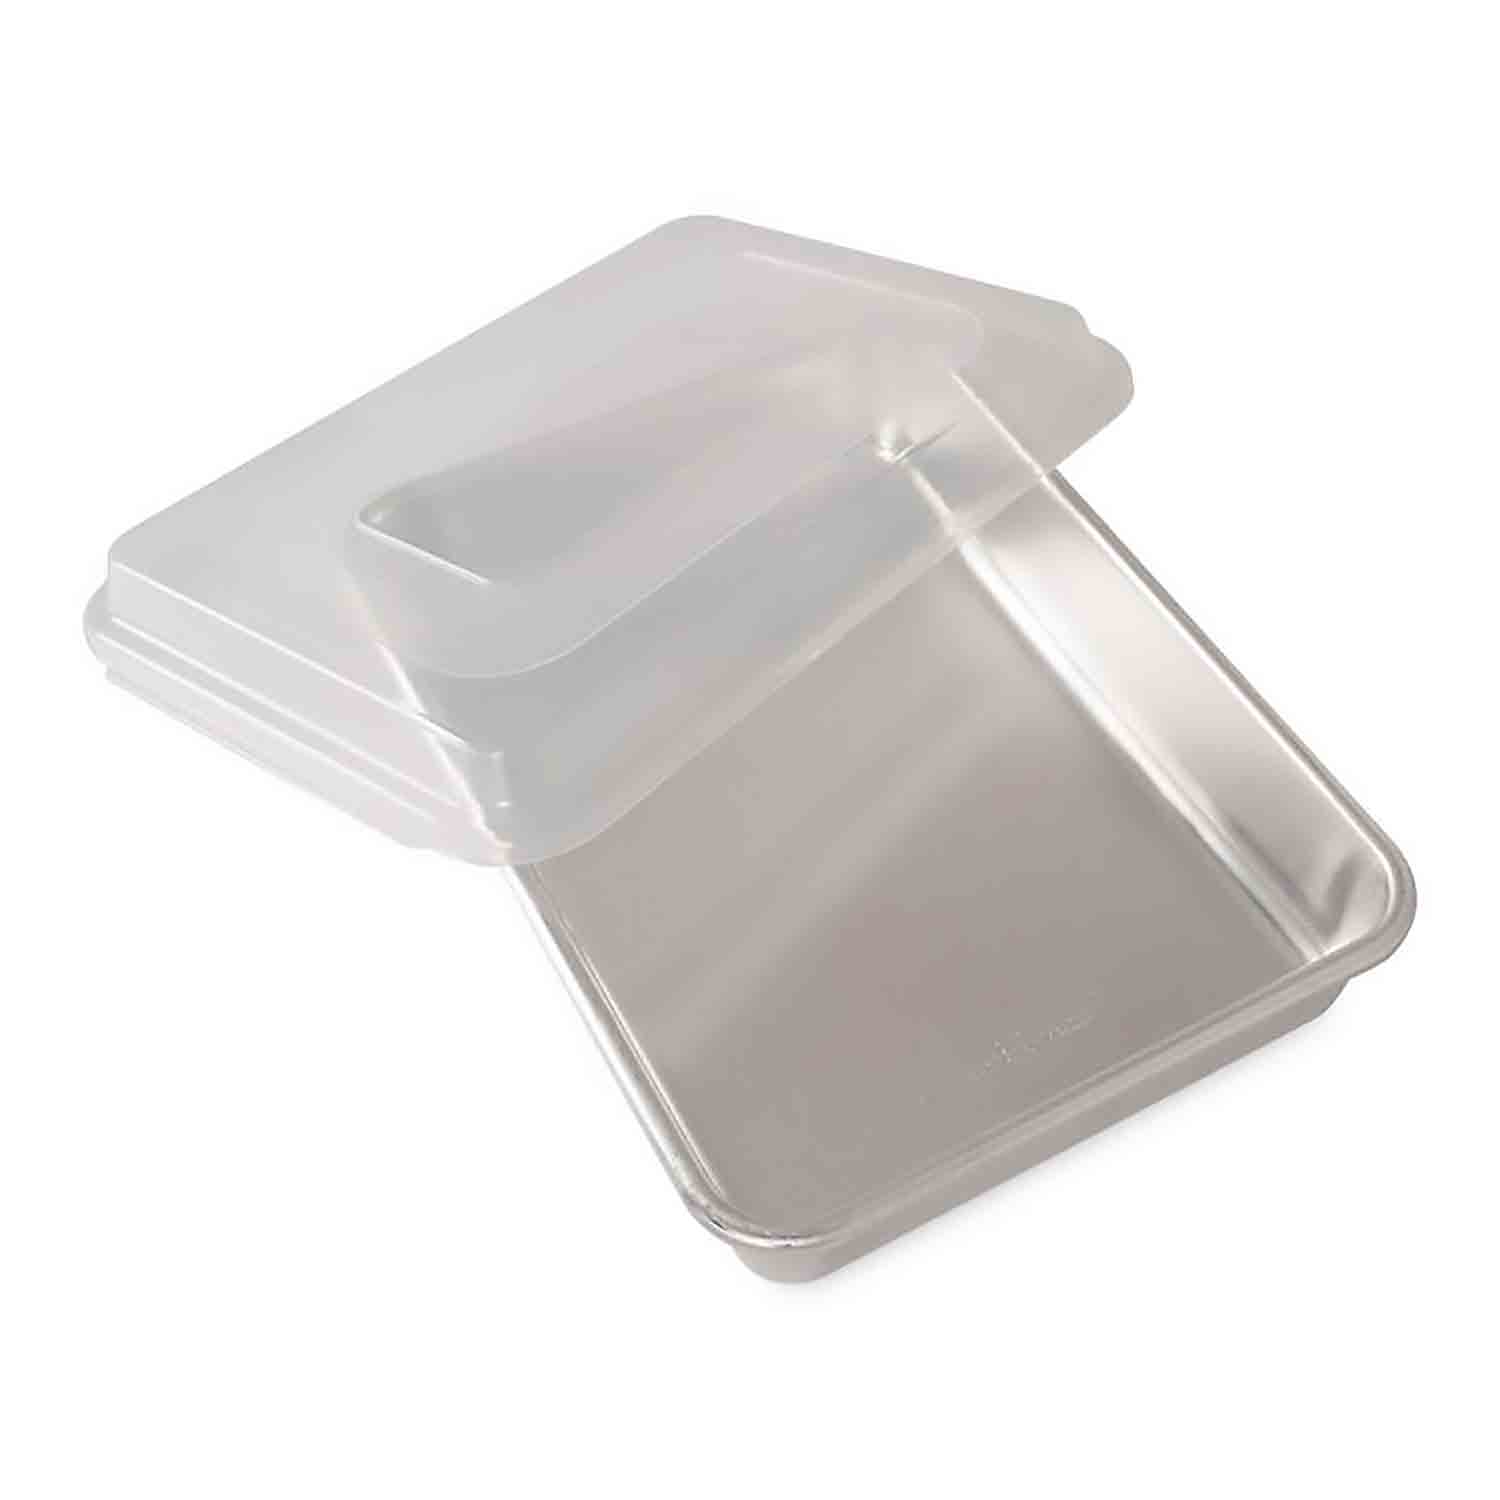 9 x 13 Quarter Sheet Cake Pan with Cover